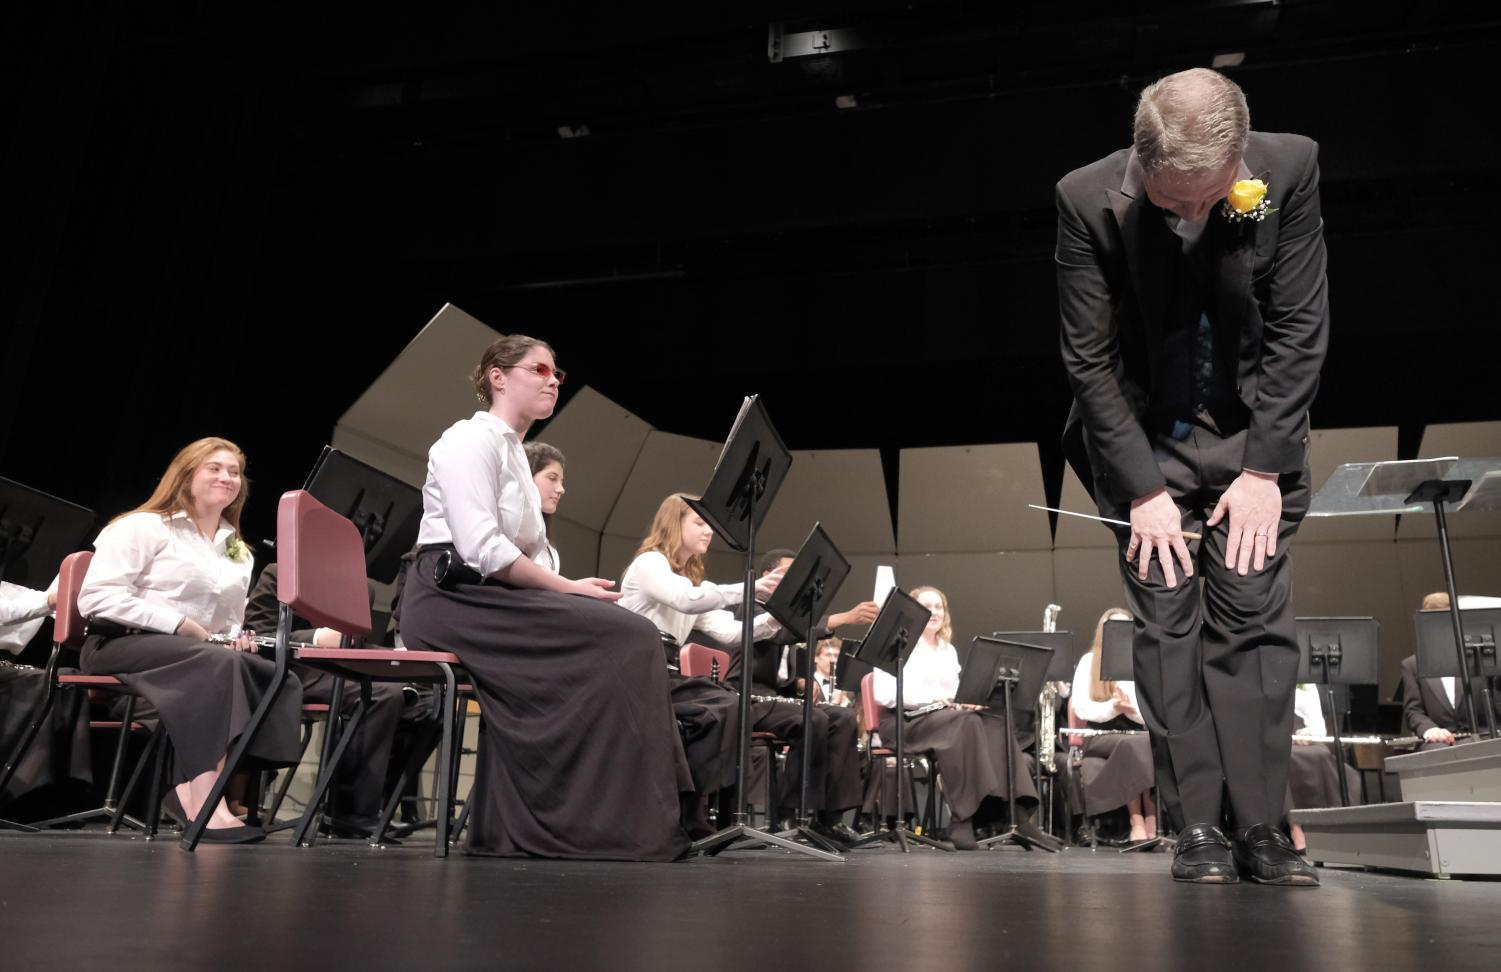 Mr. Dutrow bowing after conducting his last concert.